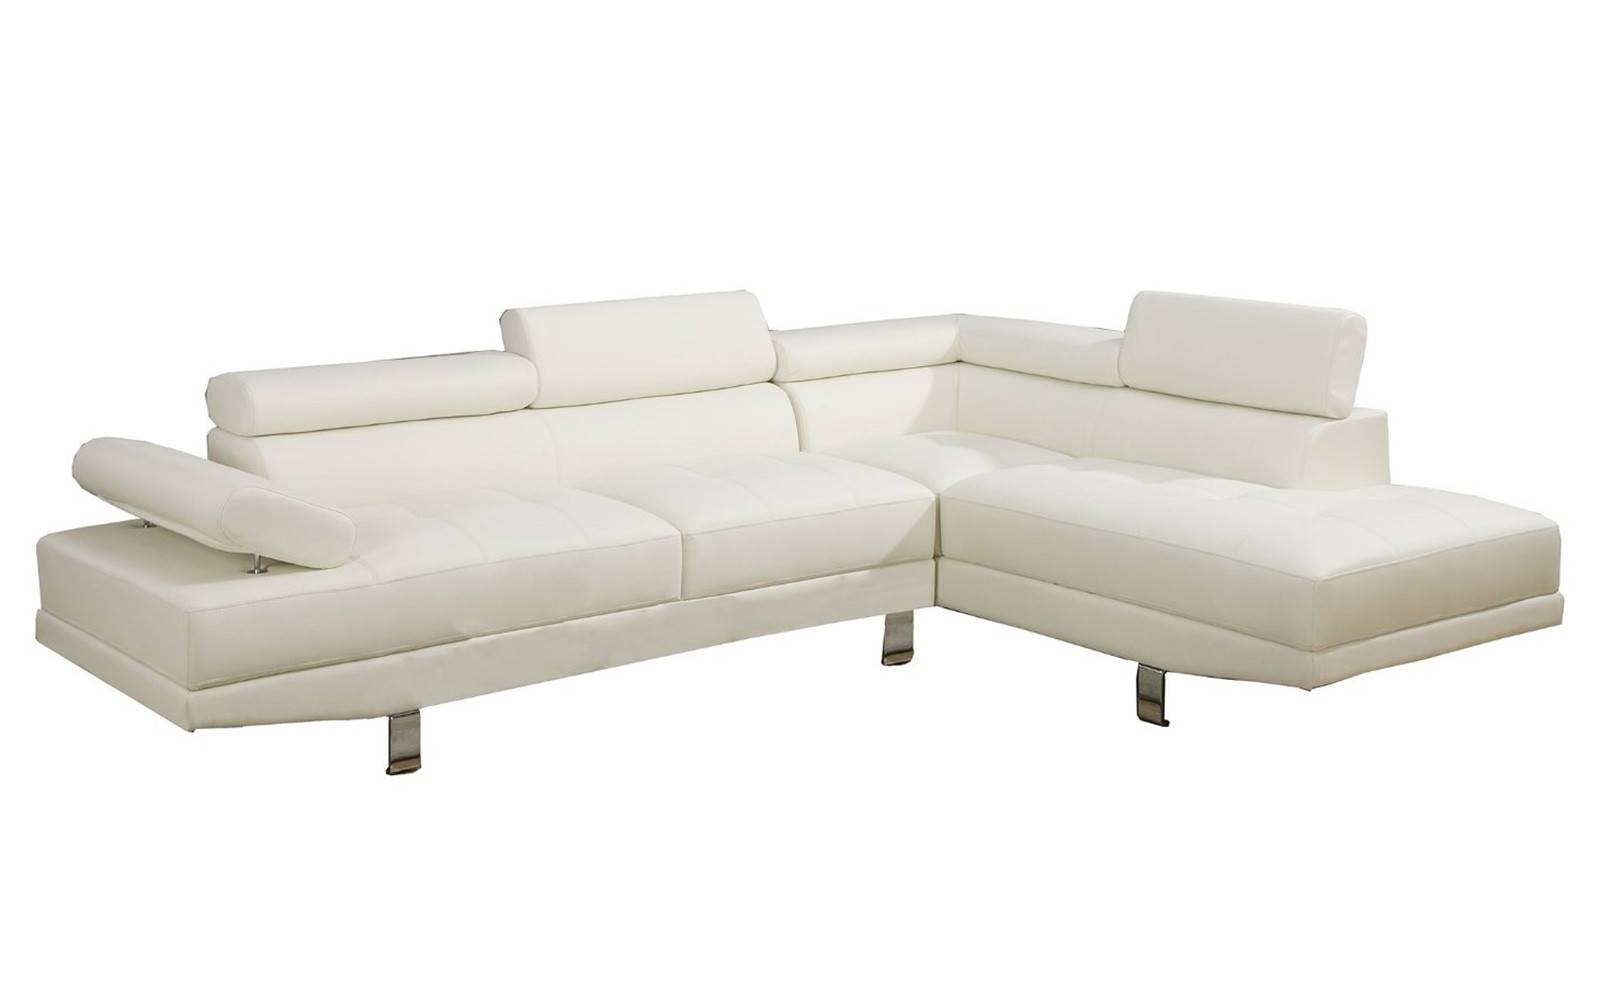 2 Piece Modern Bonded Leather Right Facing Chaise Sectional Sofa With Sectional Sofa With 2 Chaises (View 3 of 30)